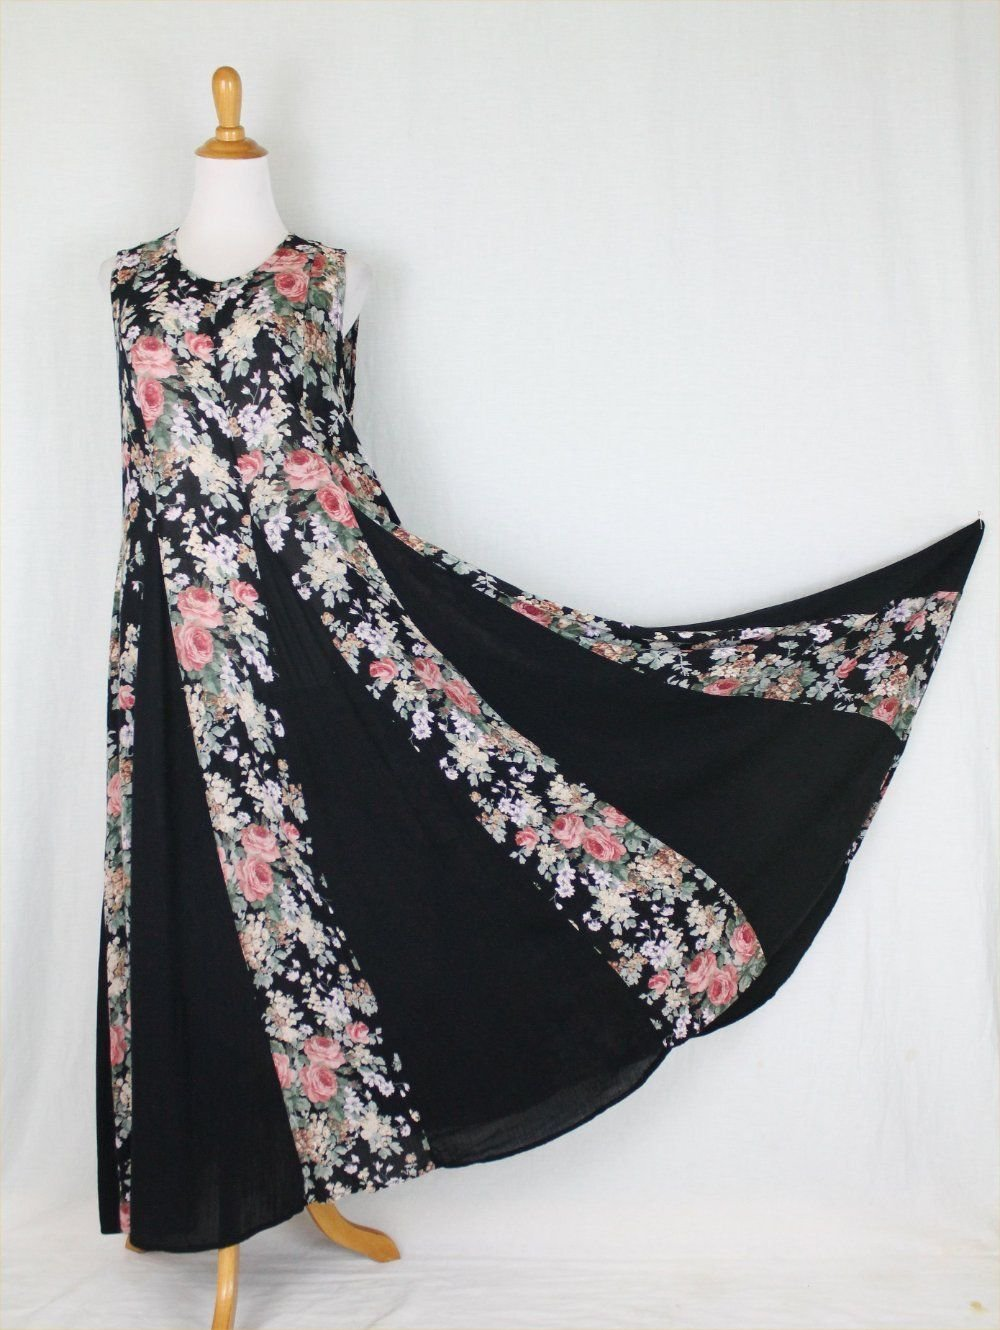 Vintage STARINA Pink & Black Floral Rose Print Sleeveless Maxi Sundress Dress M